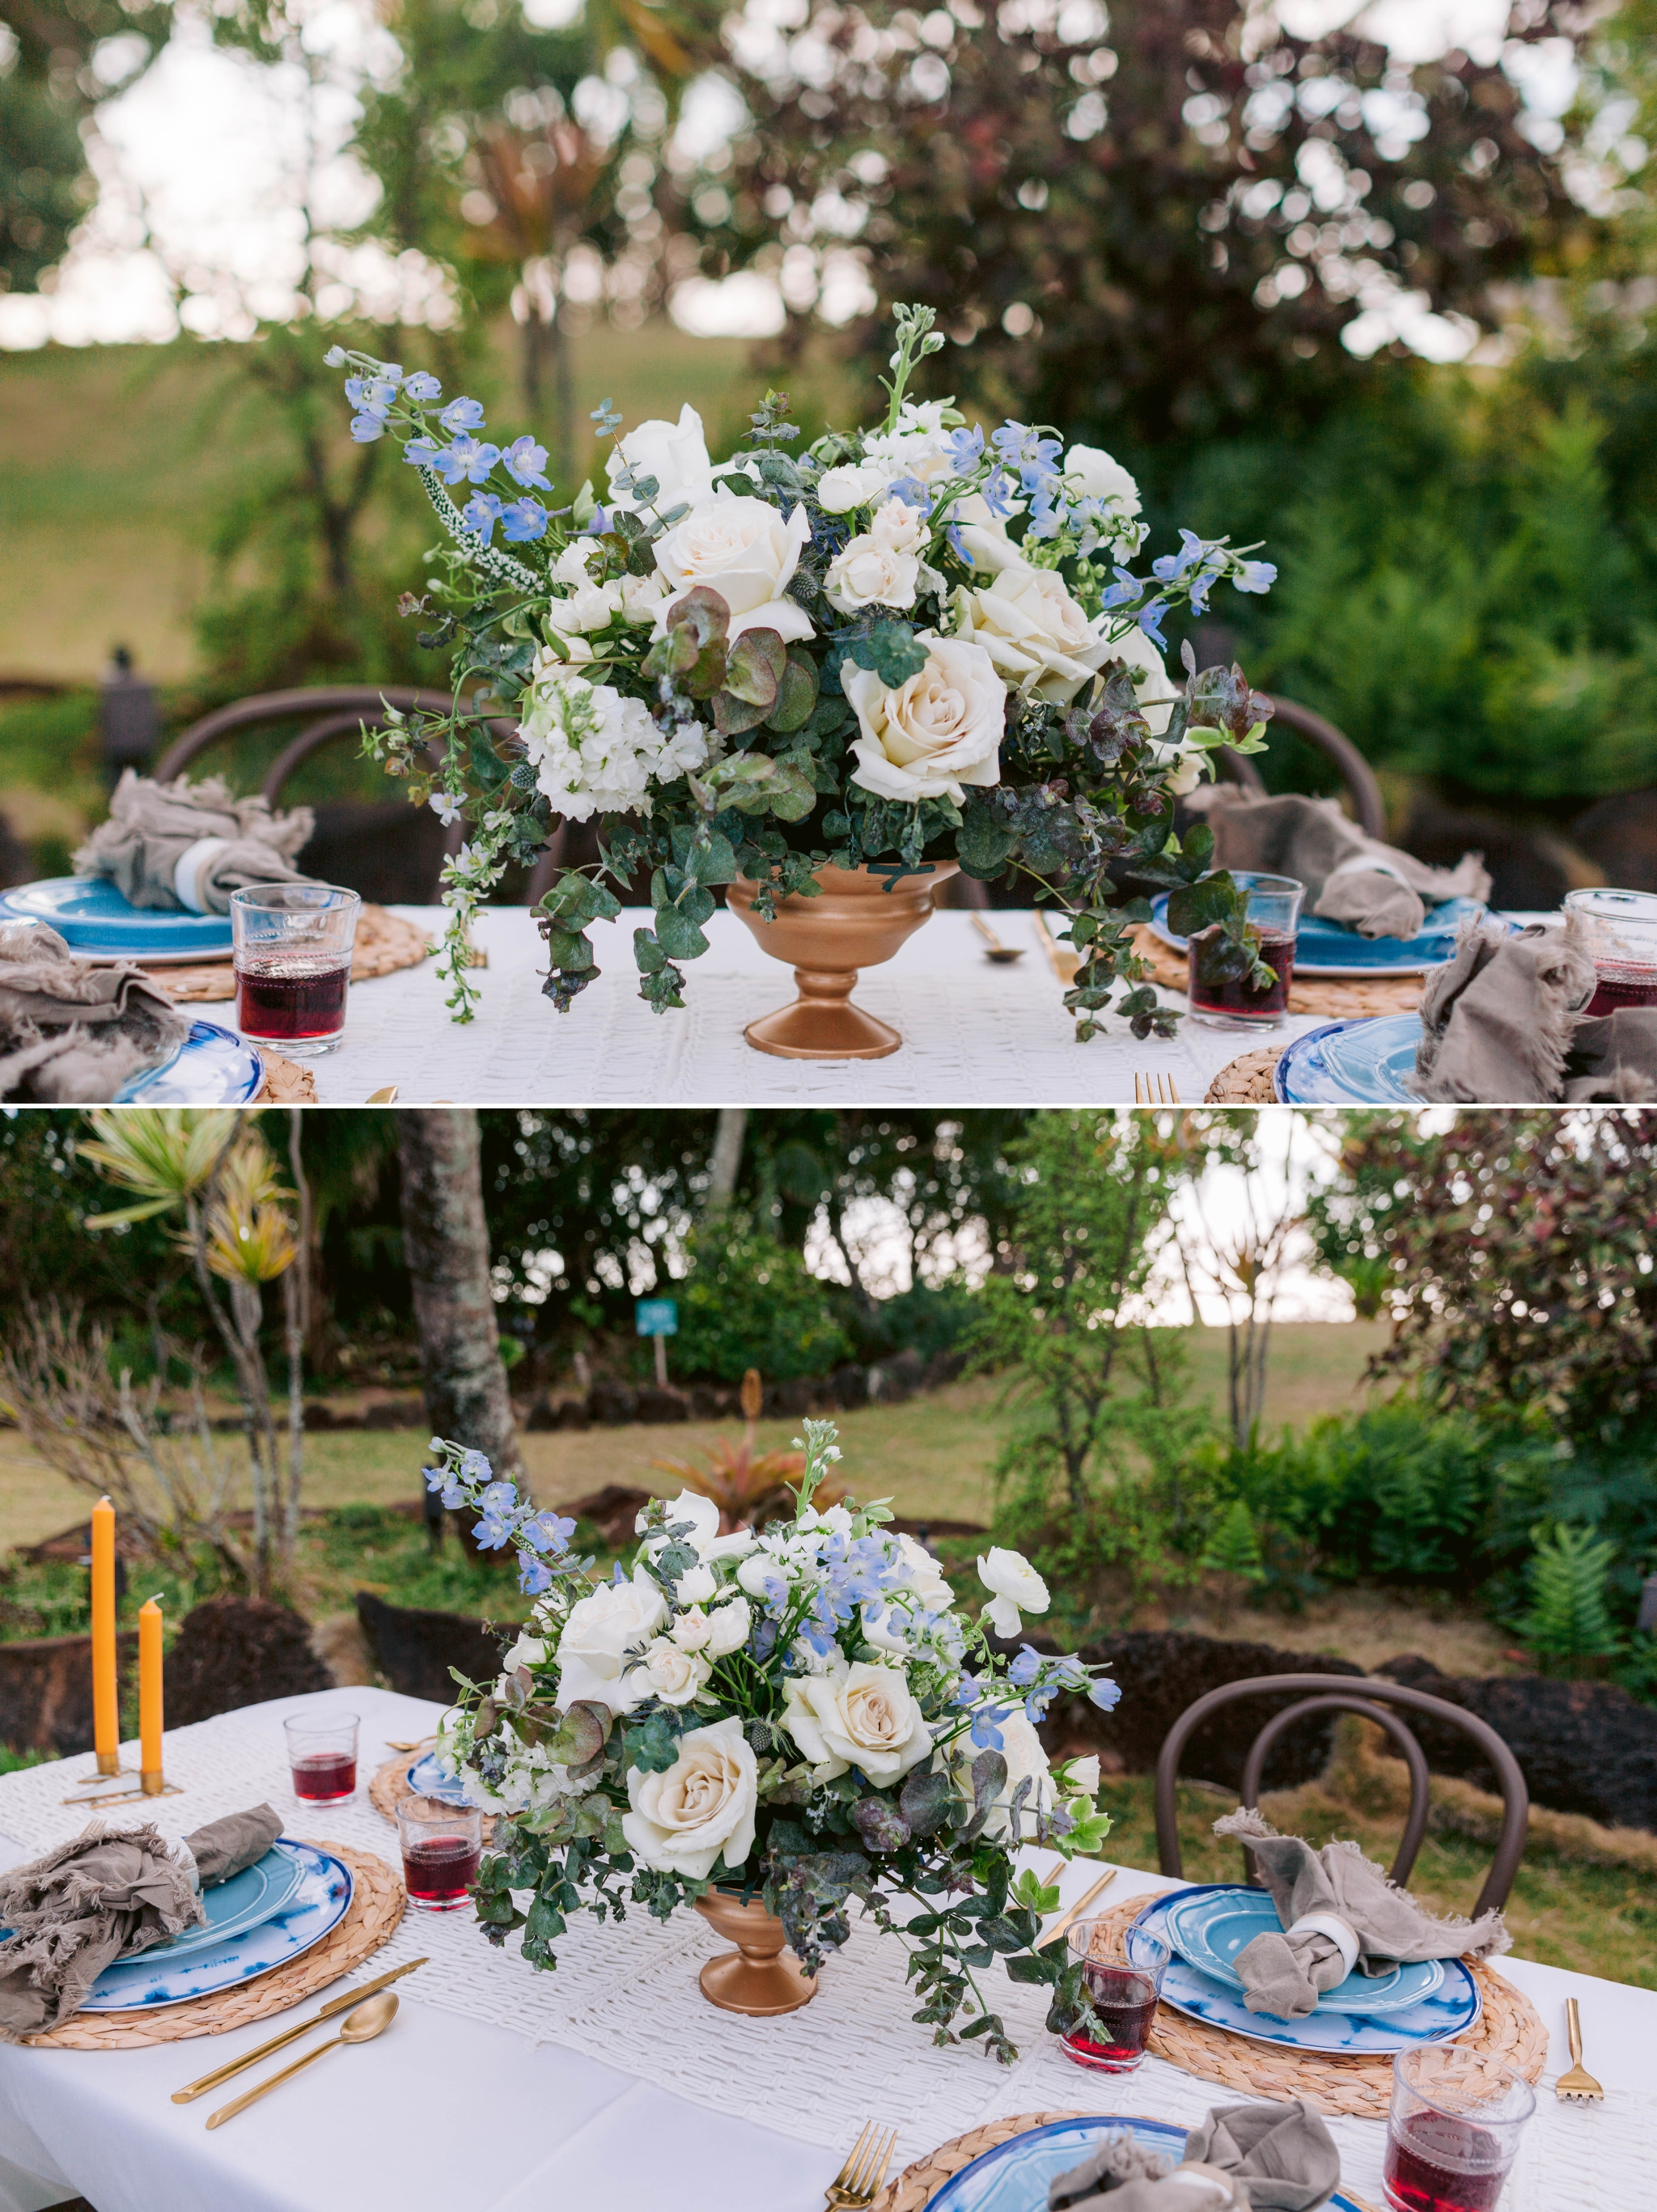 Large Flower Centerpiece with blue, gold and green accents - Ana + Elijah - Wedding at Loulu Palm in Haleiwa, HI - Oahu Hawaii Wedding Photographer